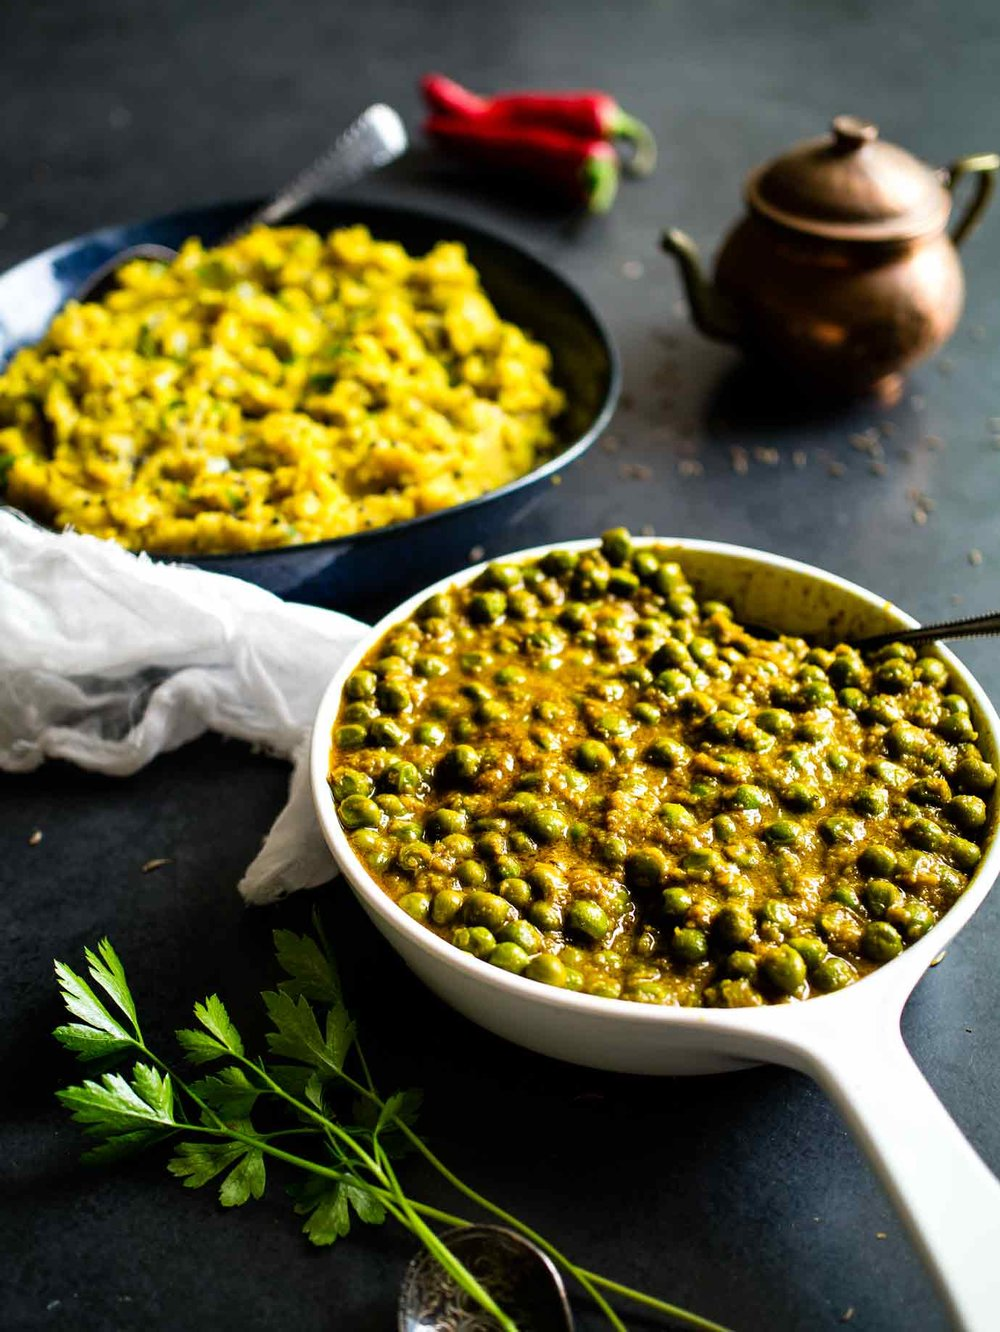 Curried Peas w/ Spiced Potato Mash = Mattar + Aloo Masala! Vegan Indian food at it's finest. Accidentally gluten free too! #curry #authentic #vegetarian #vegetable #recipes #recipe #sides #spicy #glutenfree